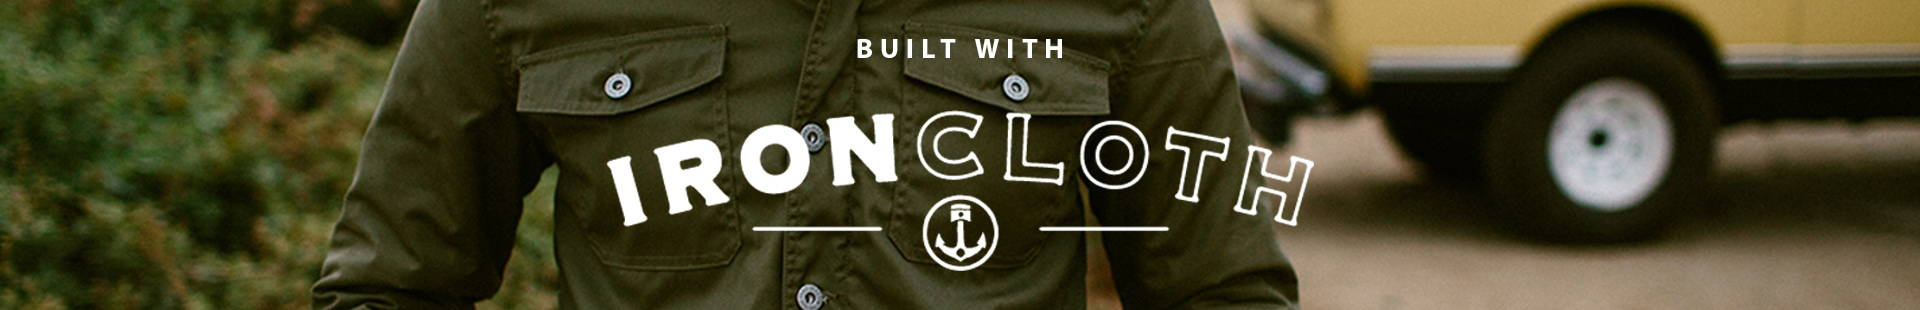 Built With Iron Cloth Collection Landing Page Image